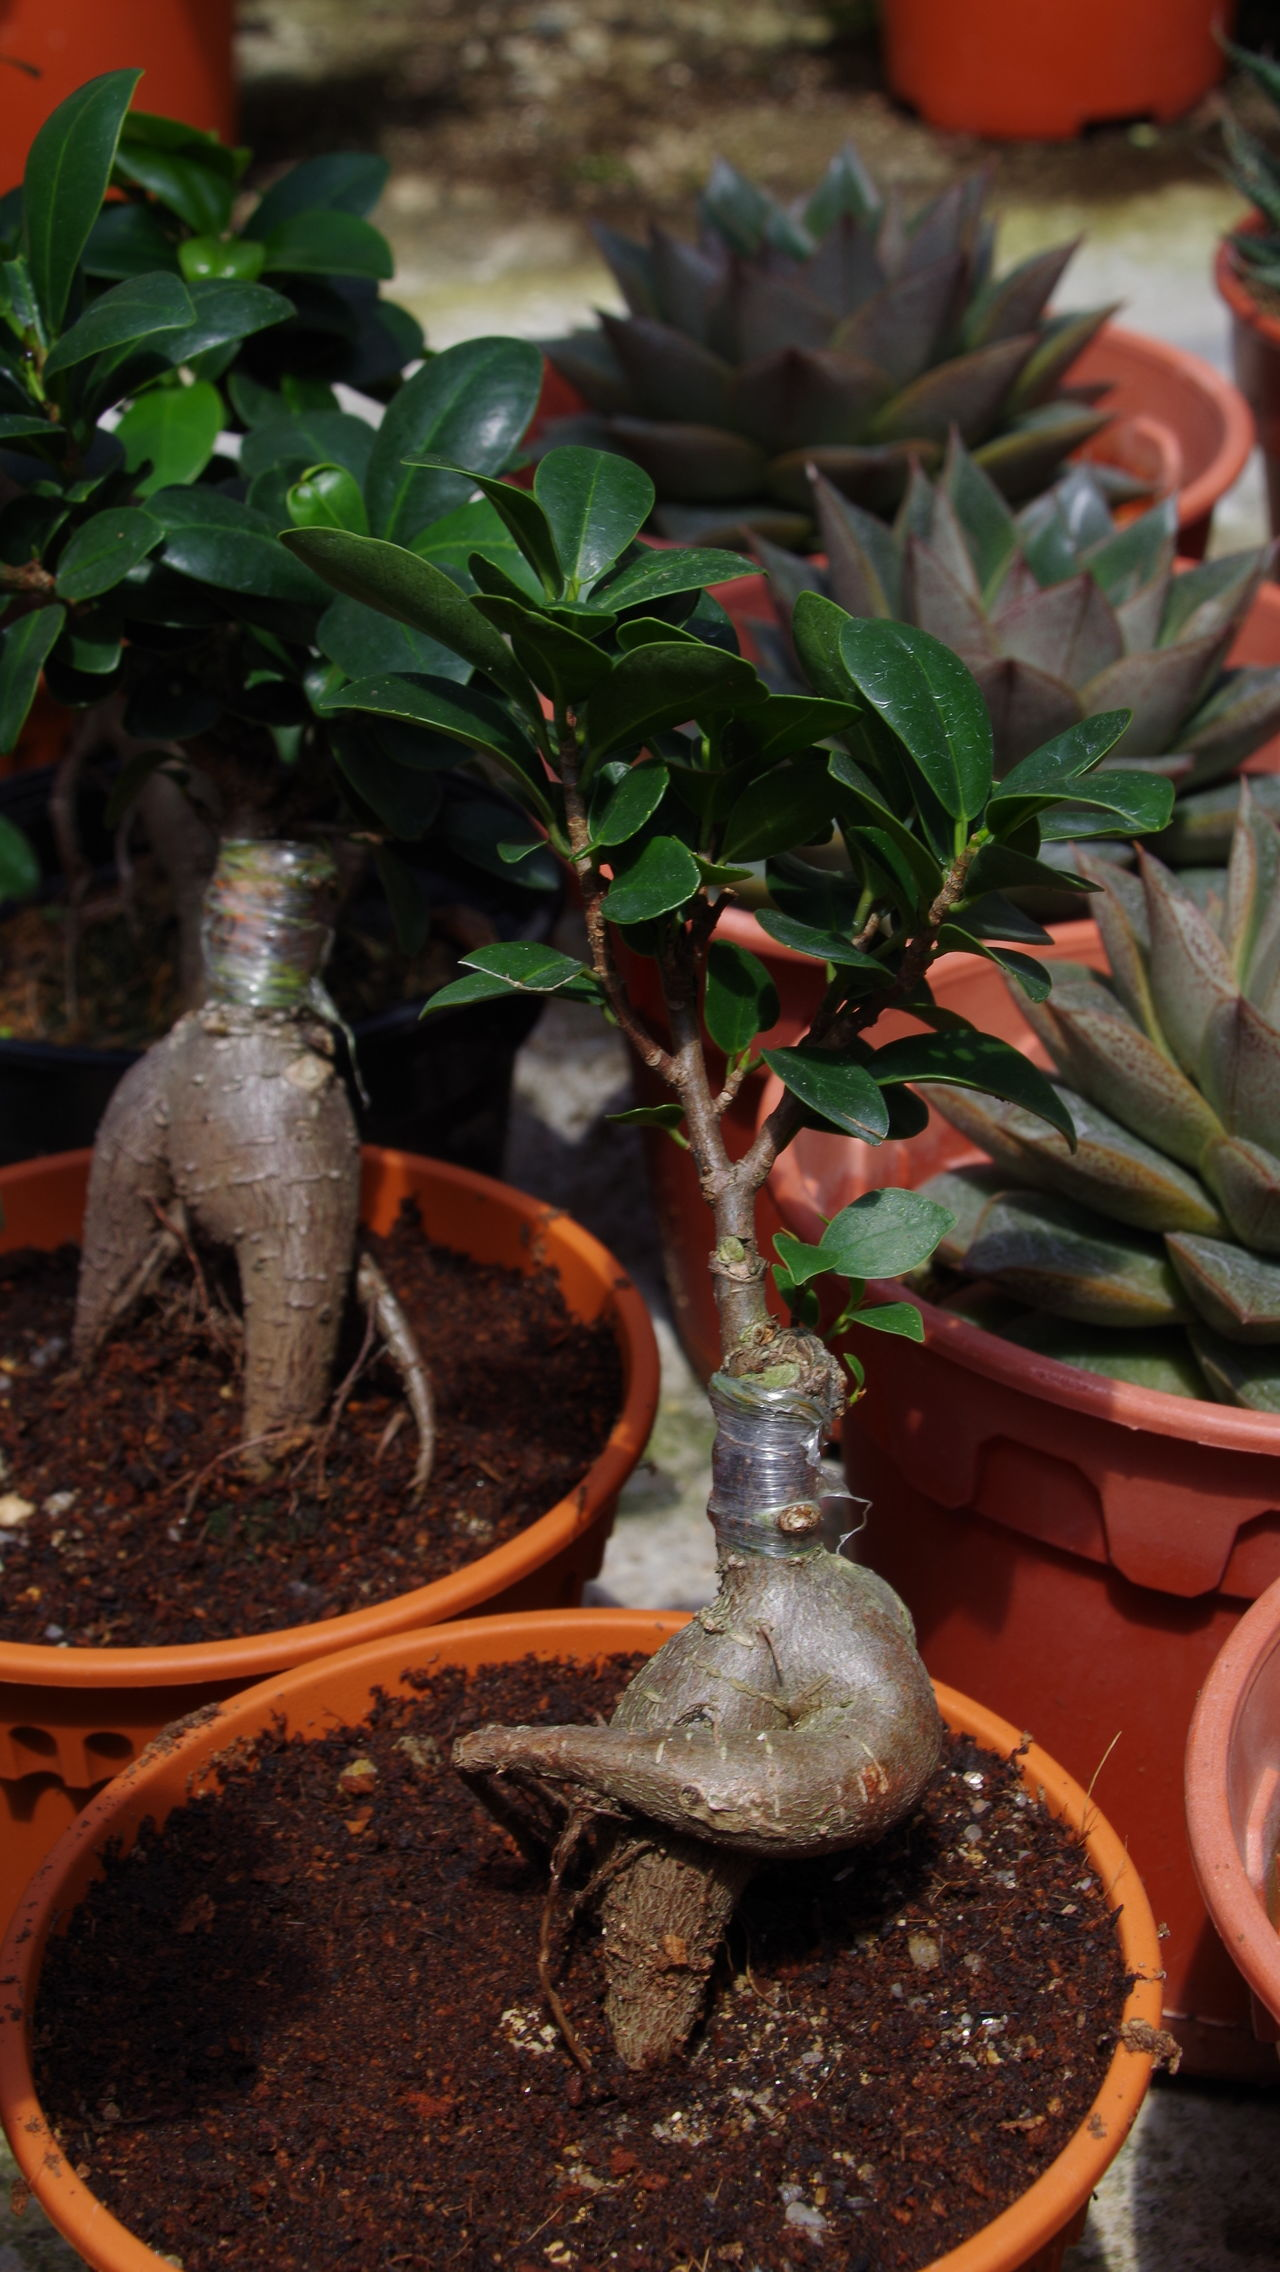 Bonzai Botany Ginseng Green Color Greenery Nature Pentax Potted Plant